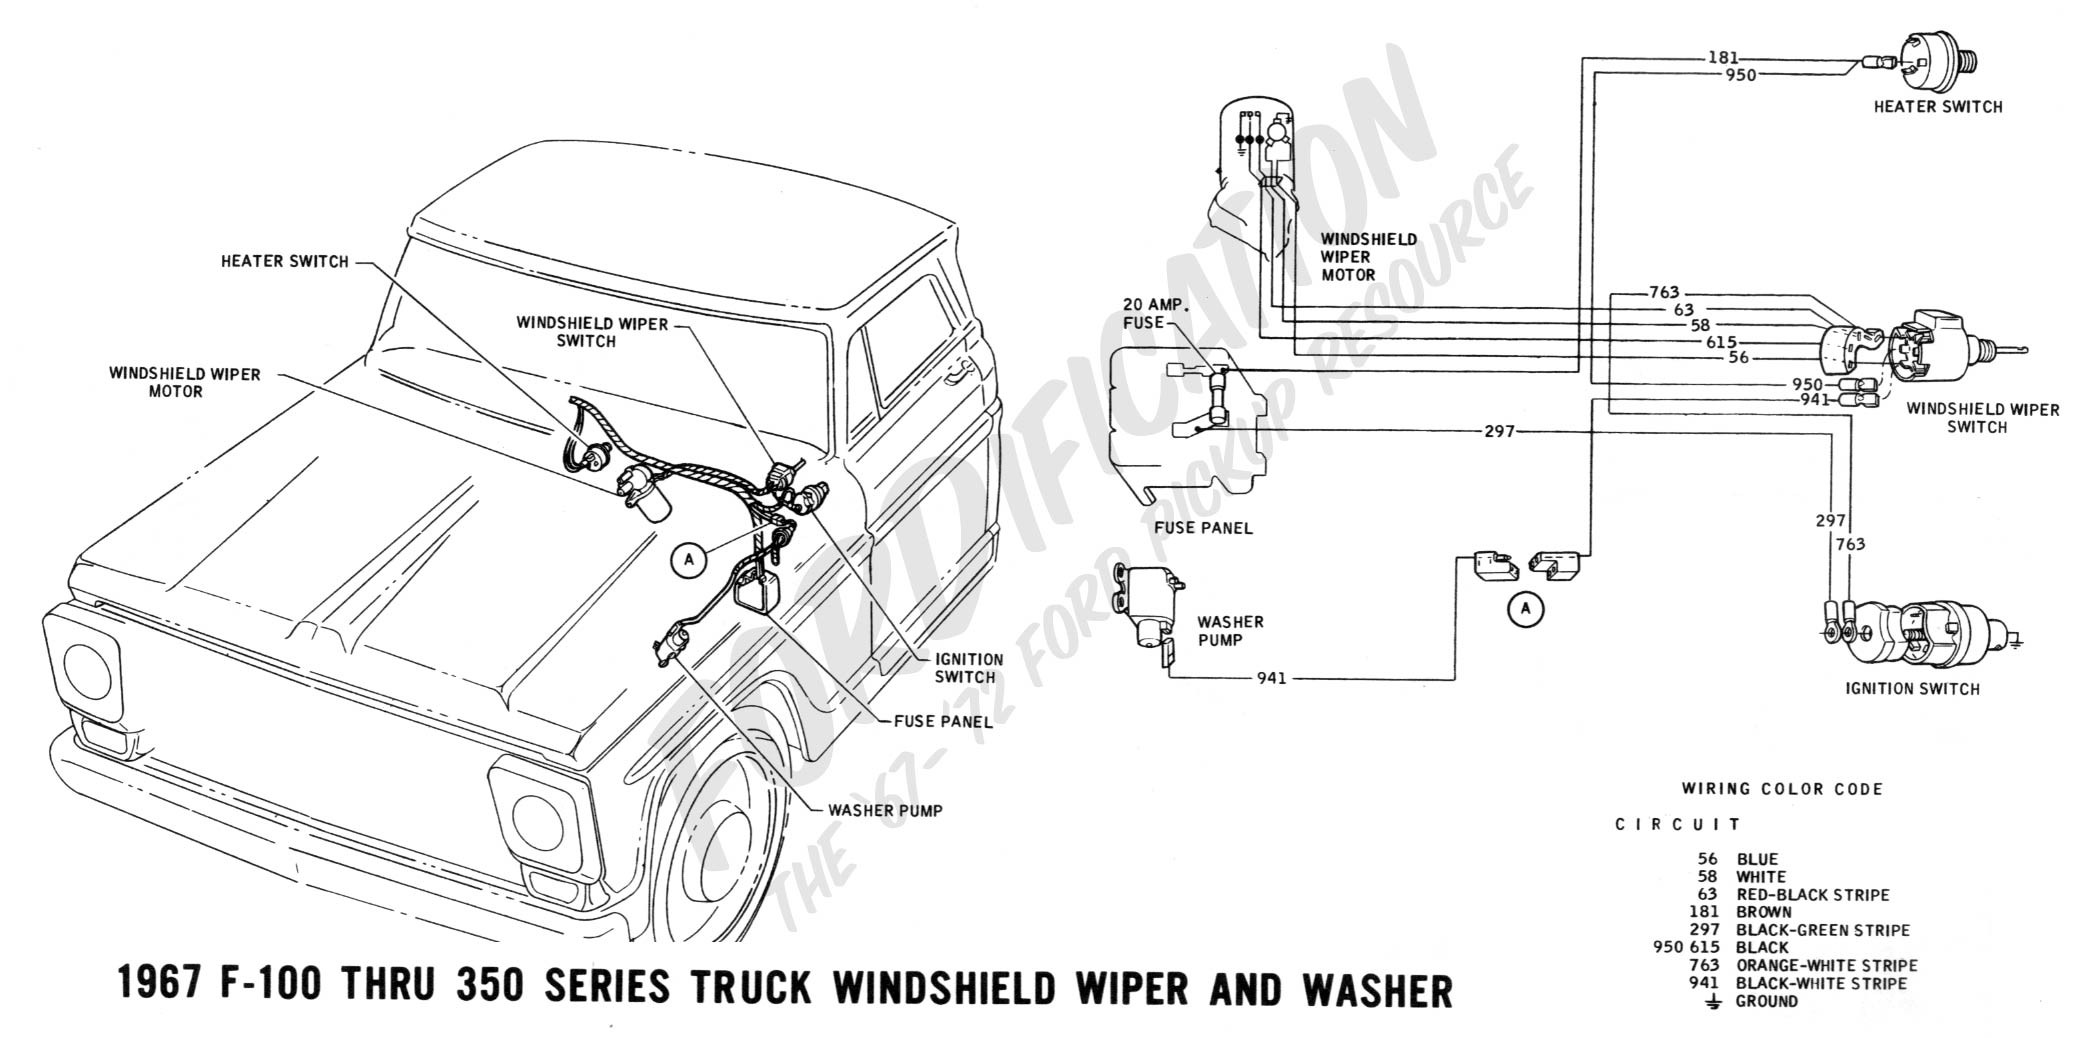 Chevy C10 Wiper Motor Wiring Diagram Wiring Diagram